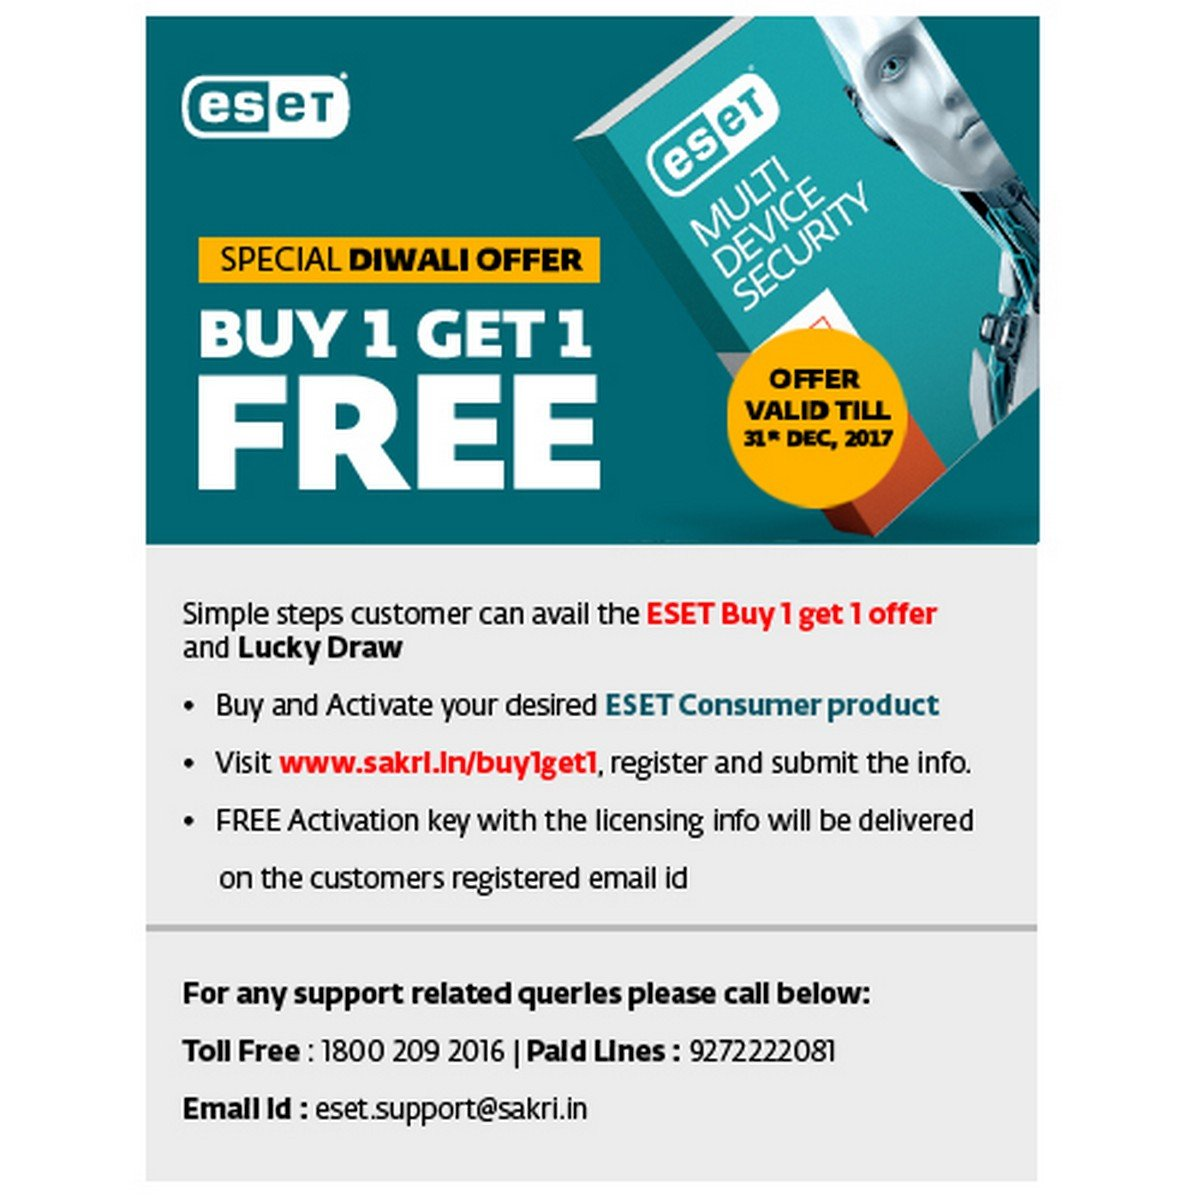 Eset Multi Device Smart Security Device Year CD Get Buy - Deepavali special at the green furniture offers valid while stocks